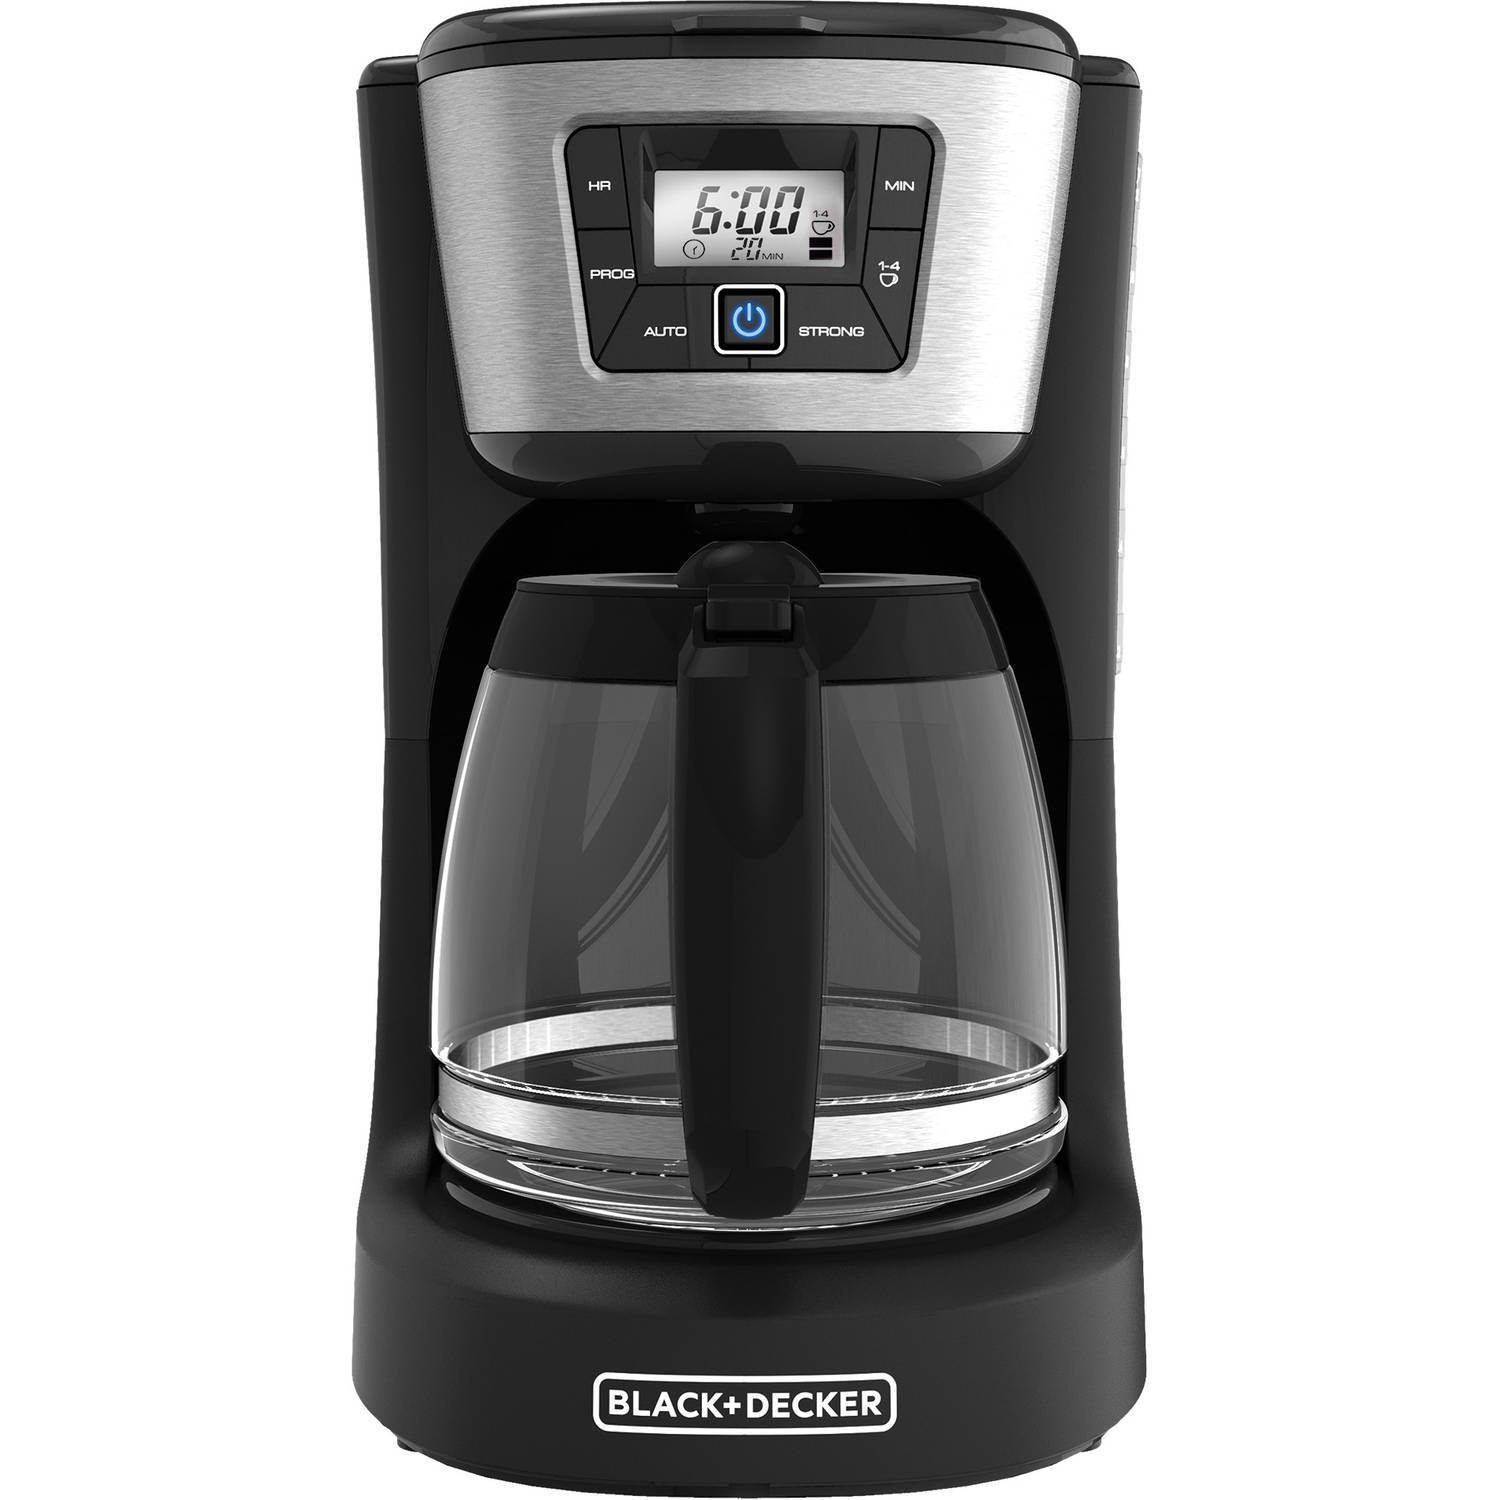 Black and decker coffee maker 12 cup programmable - Black decker 12 cup programmable coffee maker cm2030b